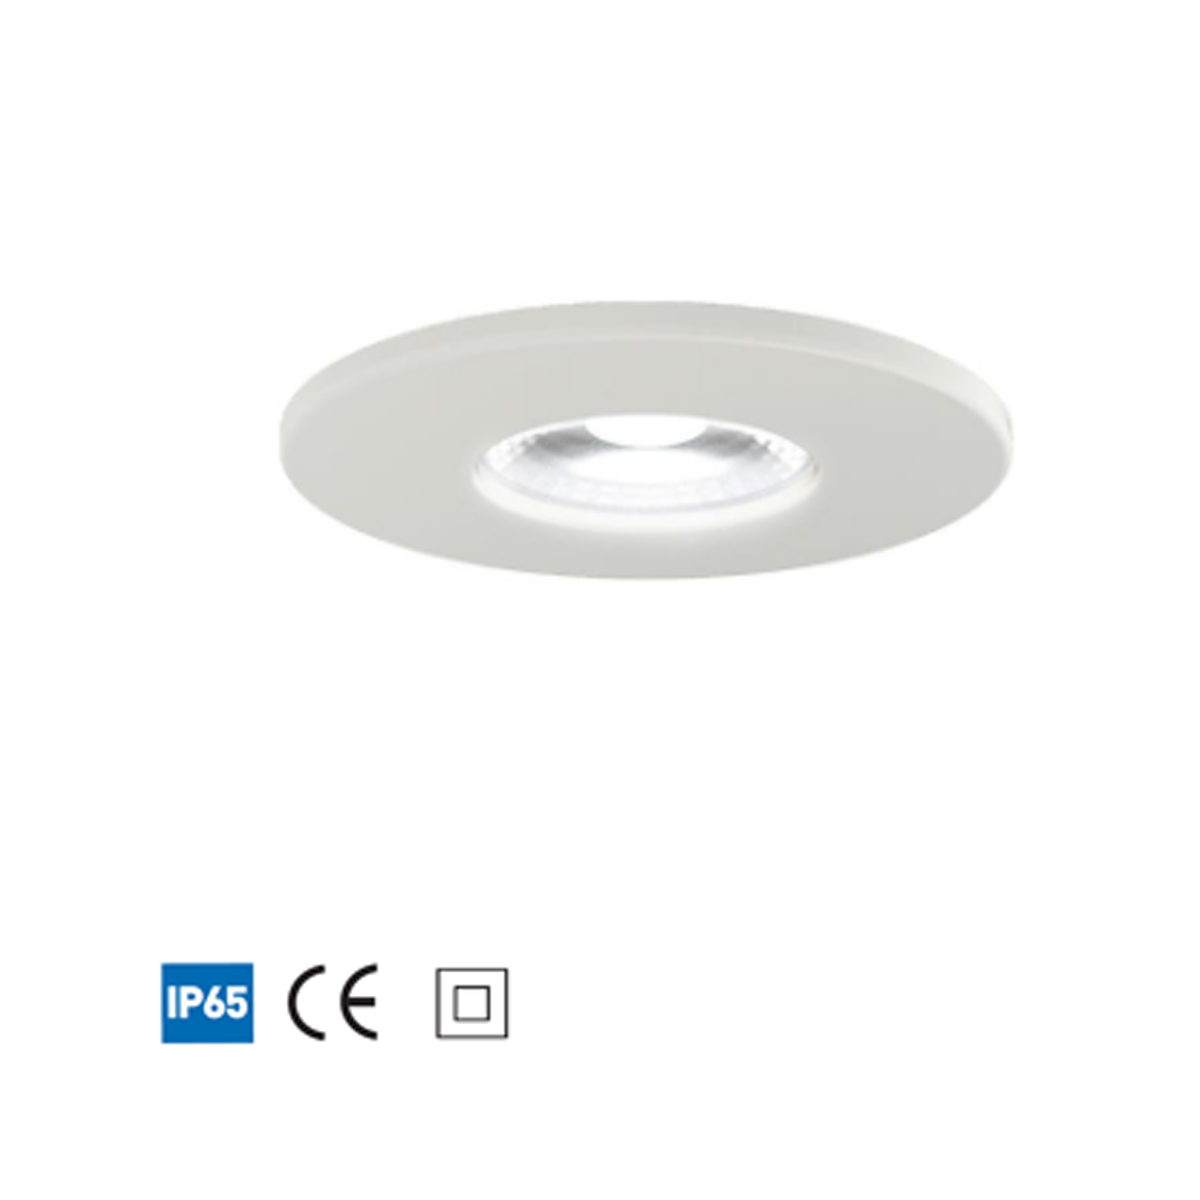 ANSELL Argo LED IP65 Downlight 5W - Cool White